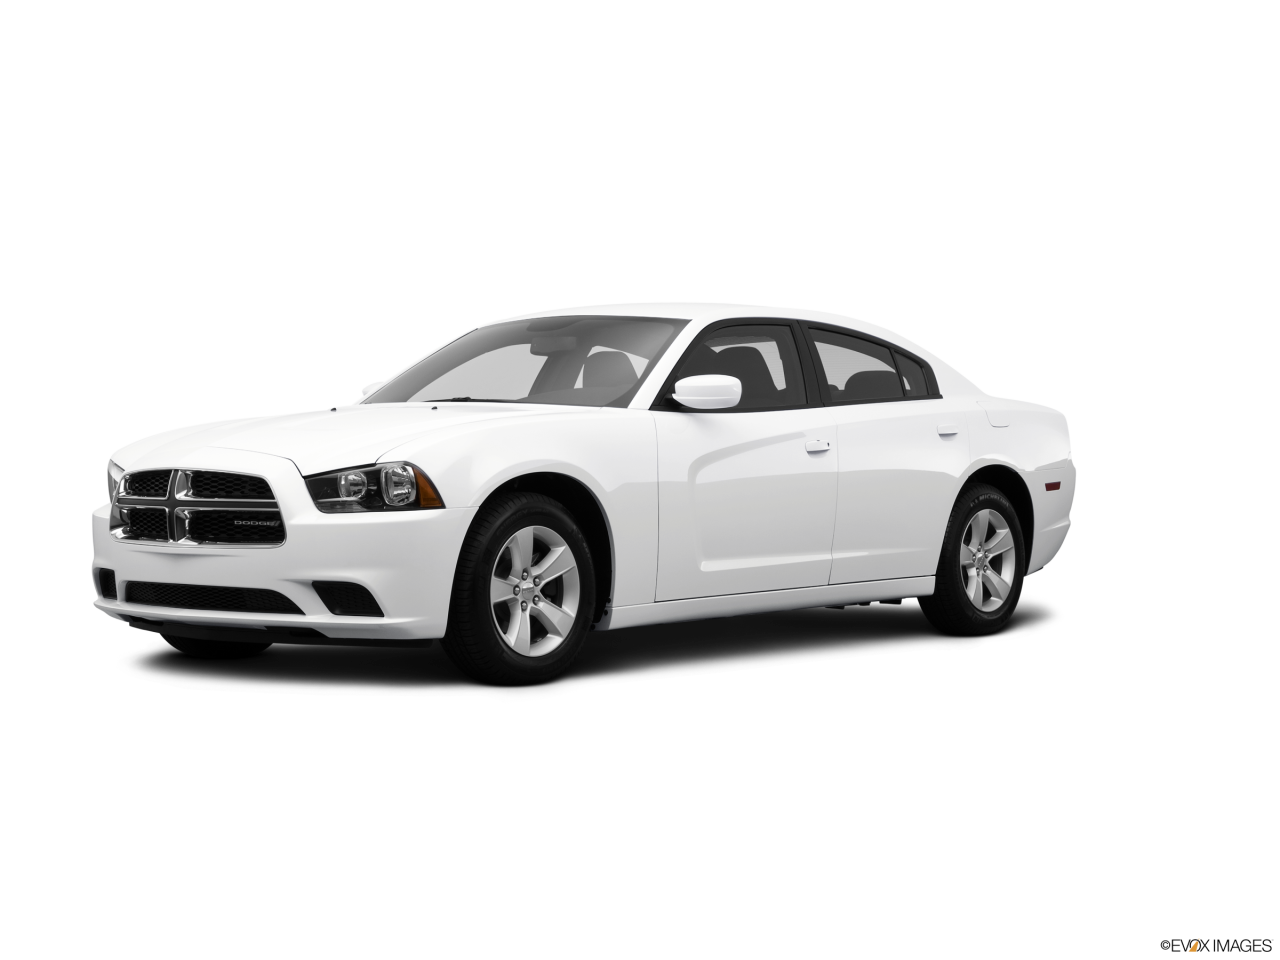 2014-Dodge-Charger-front_9040_032_2400x1800_PWD.png